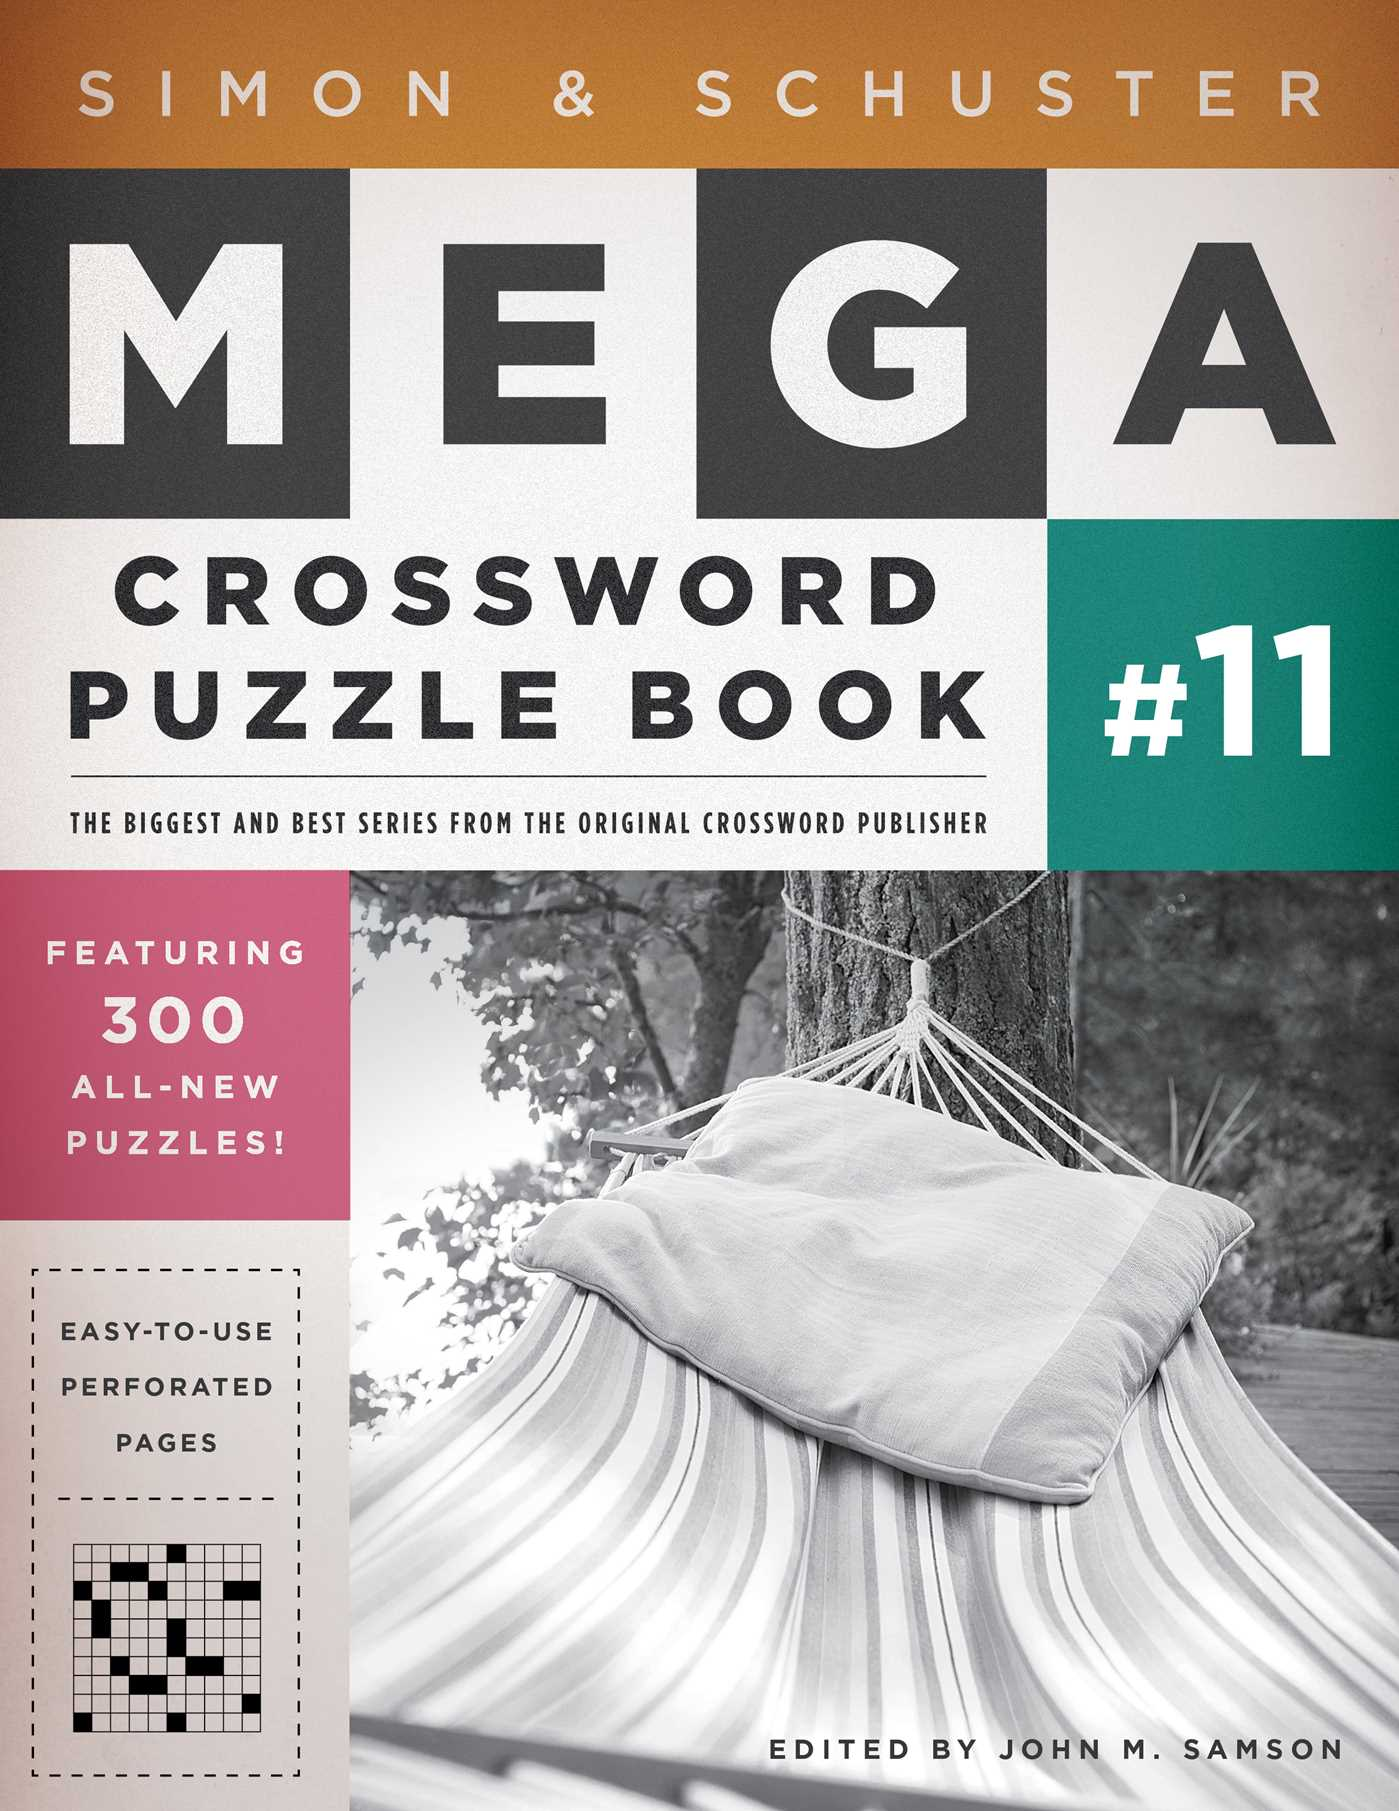 Simon schuster mega crossword puzzle book 11 9781451627398 hr